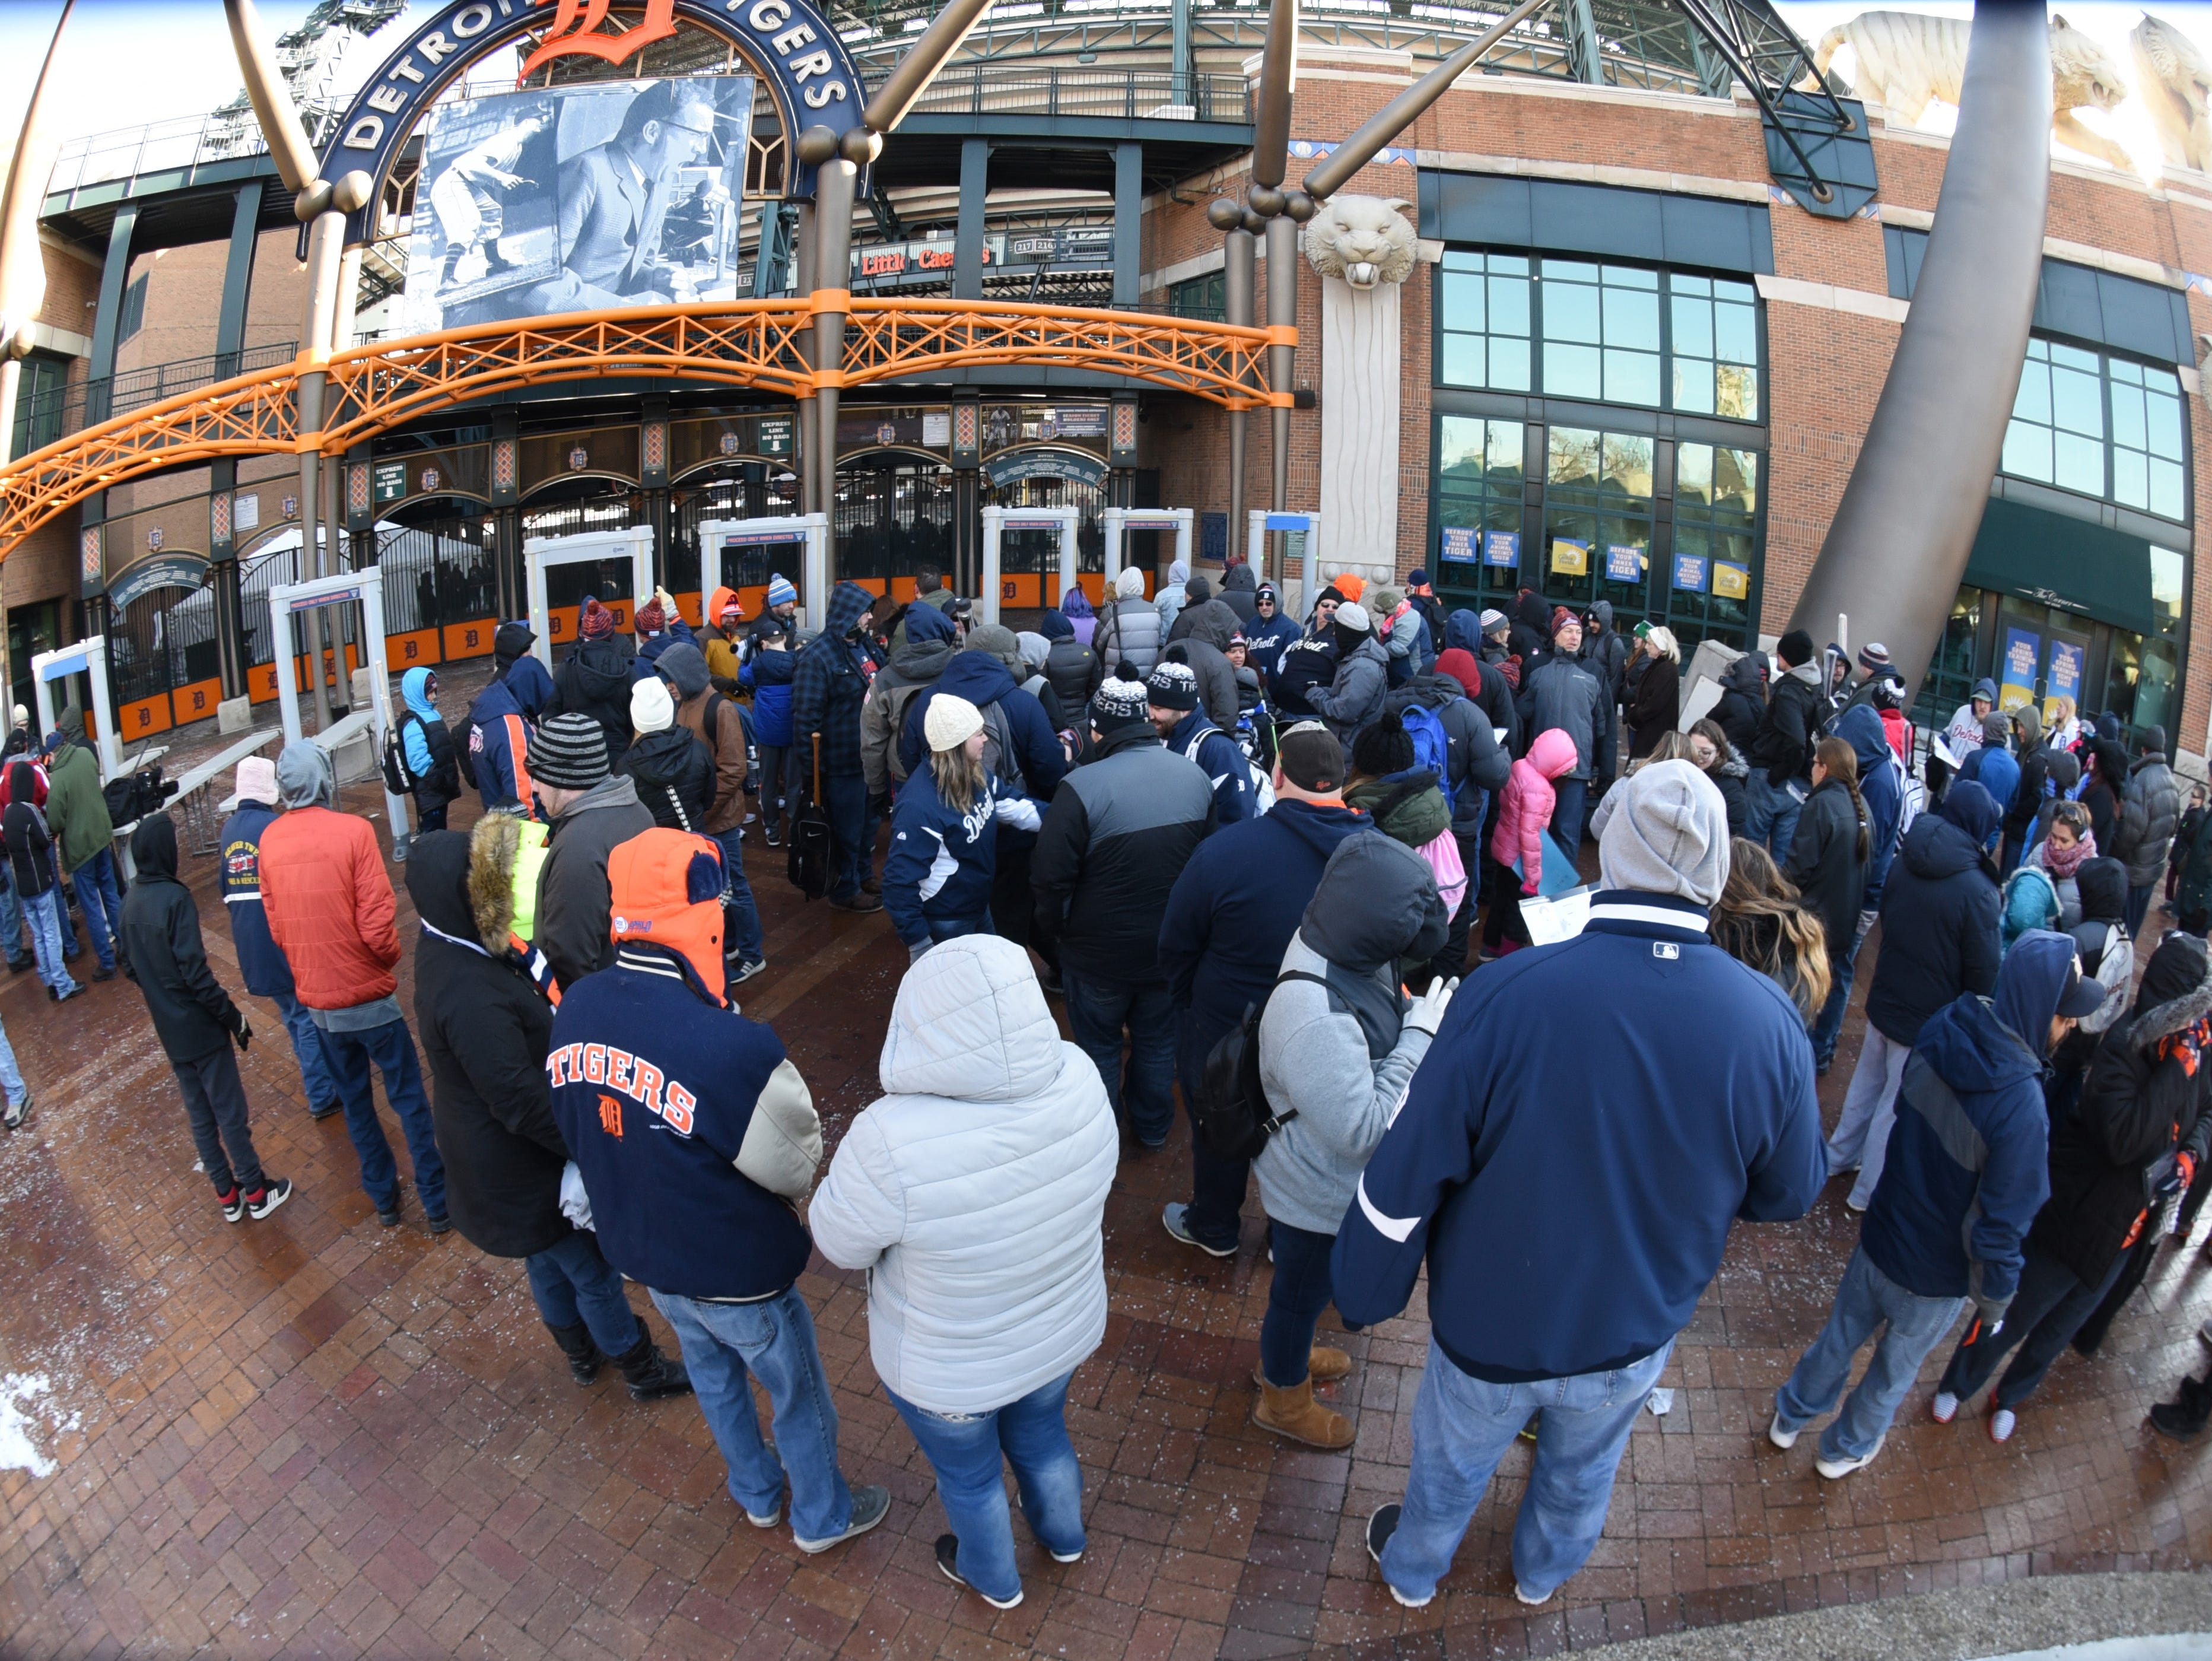 Hundreds line outside Comerica Park for TigerFest on Saturday, January 26, 2019. Max Ortiz, The Detroit News